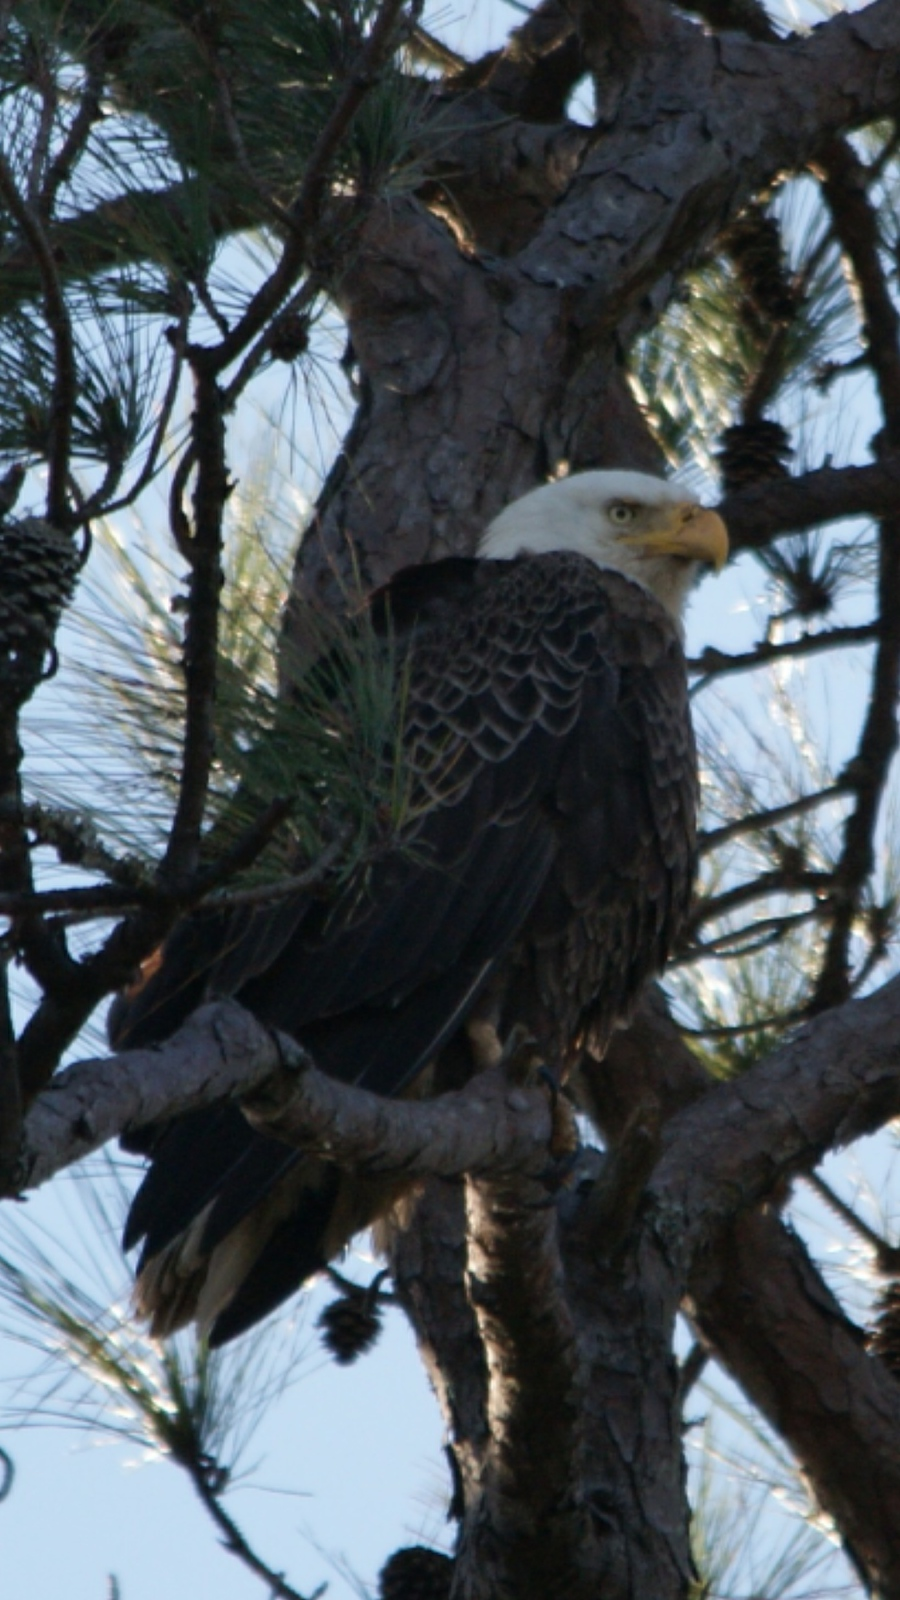 This bald eagle can be seen daily perched in a long leaf pine on Battery White, but you can also see this species up close and in free flight at the Center for Birds of Prey in Awendaw. Photo by Tal Tallon, a resident of Belle Isle.